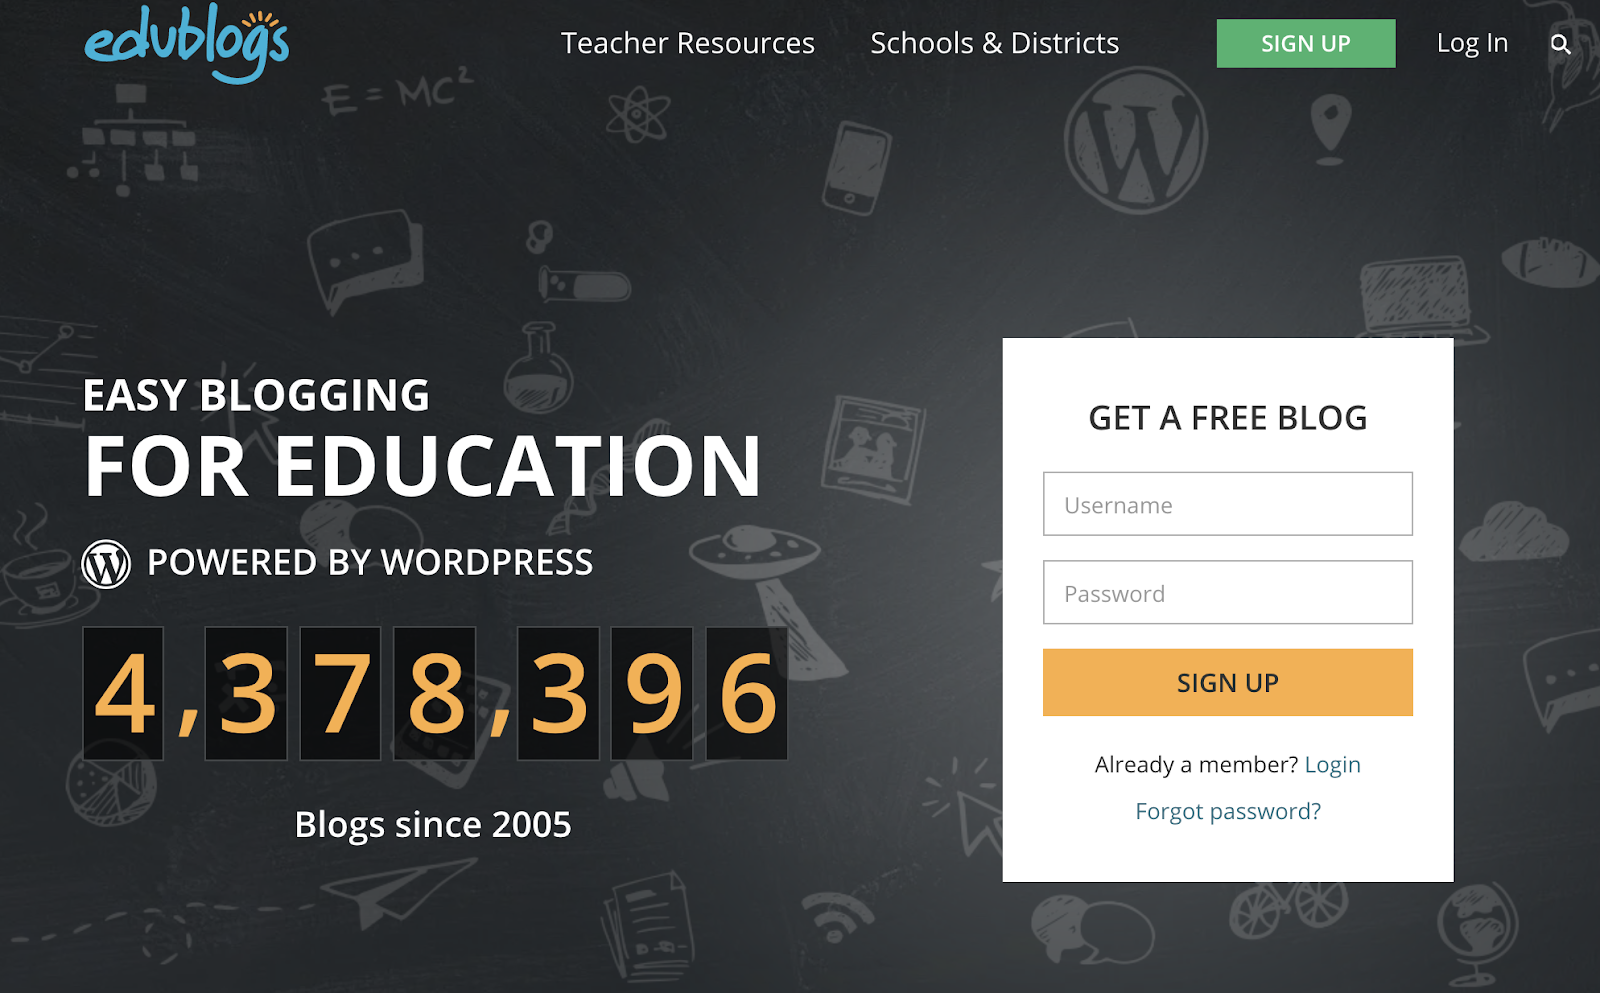 Edublogs homepage saying they have over 4.3 million blogs powered by WordPress.